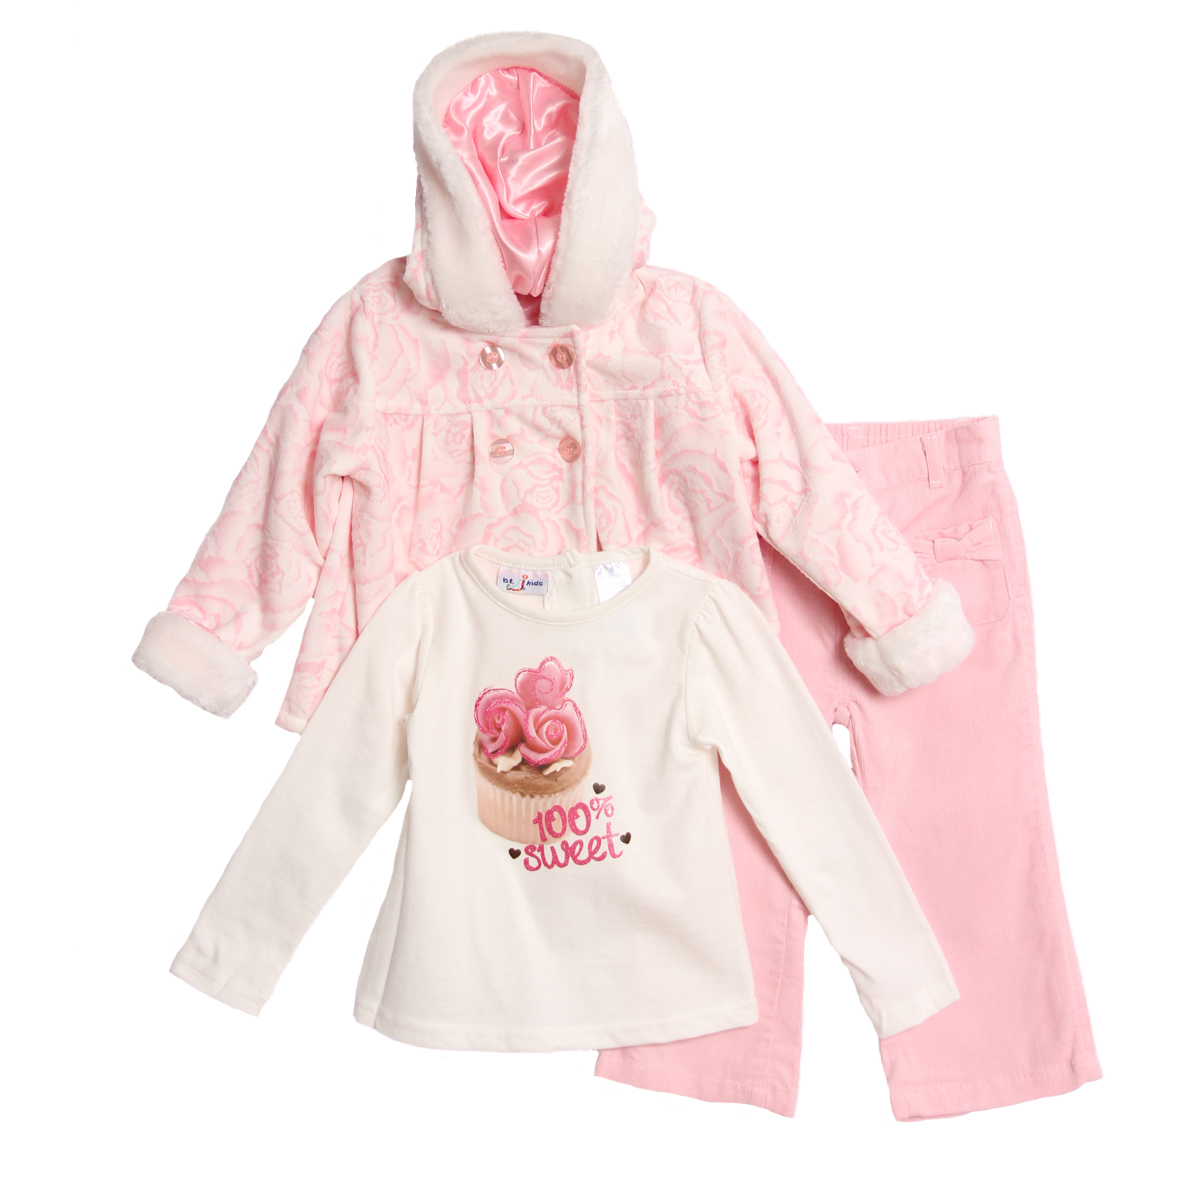 B.T. Kids Infant Baby Girls 3 Piece Pink Hooded Winter Coat Top Corduroy Pants at Sears.com